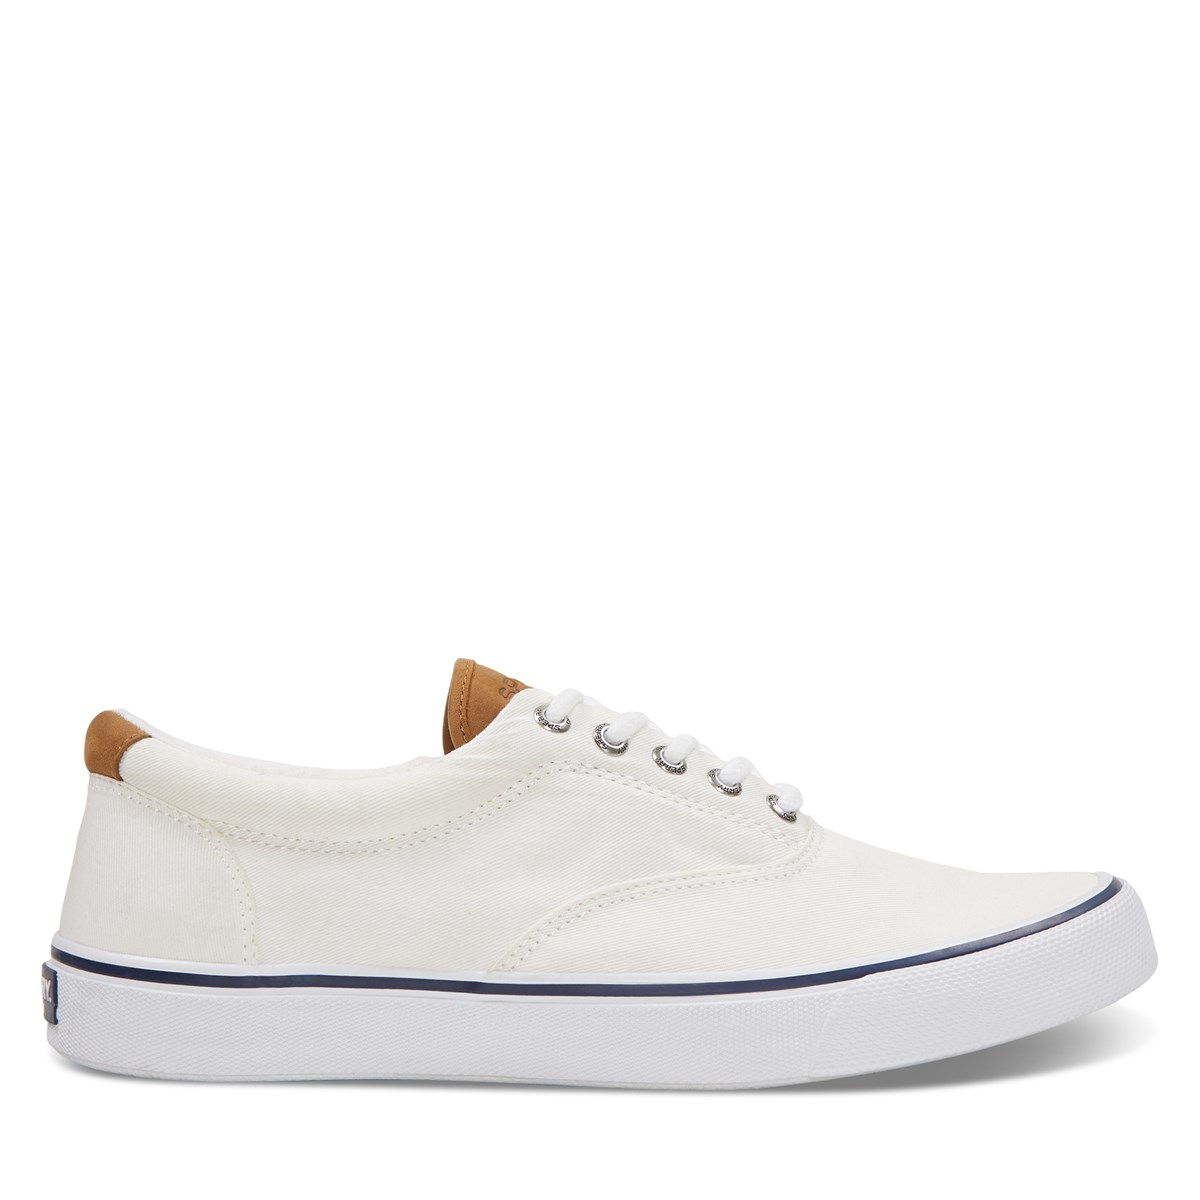 Chaussures Stripper II CVO blanches pour hommes